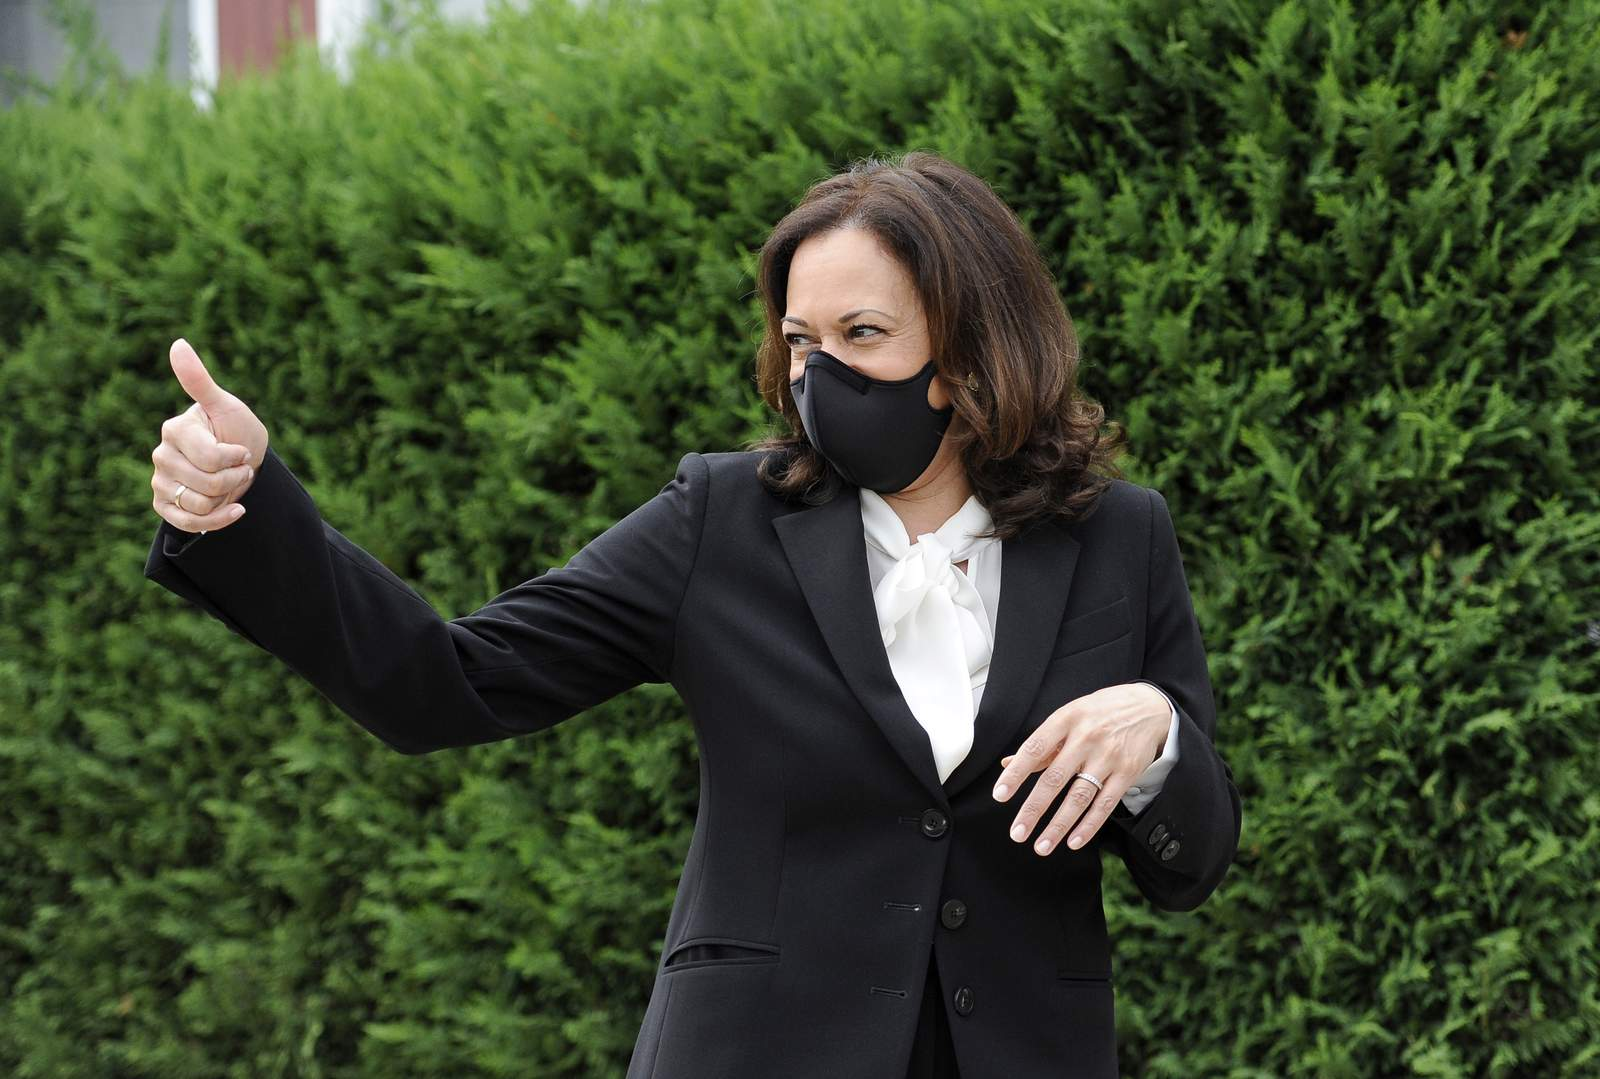 Watch Live Kamala Harris Holds Shop Talk Event In Detroit To Discuss Racial Justice More